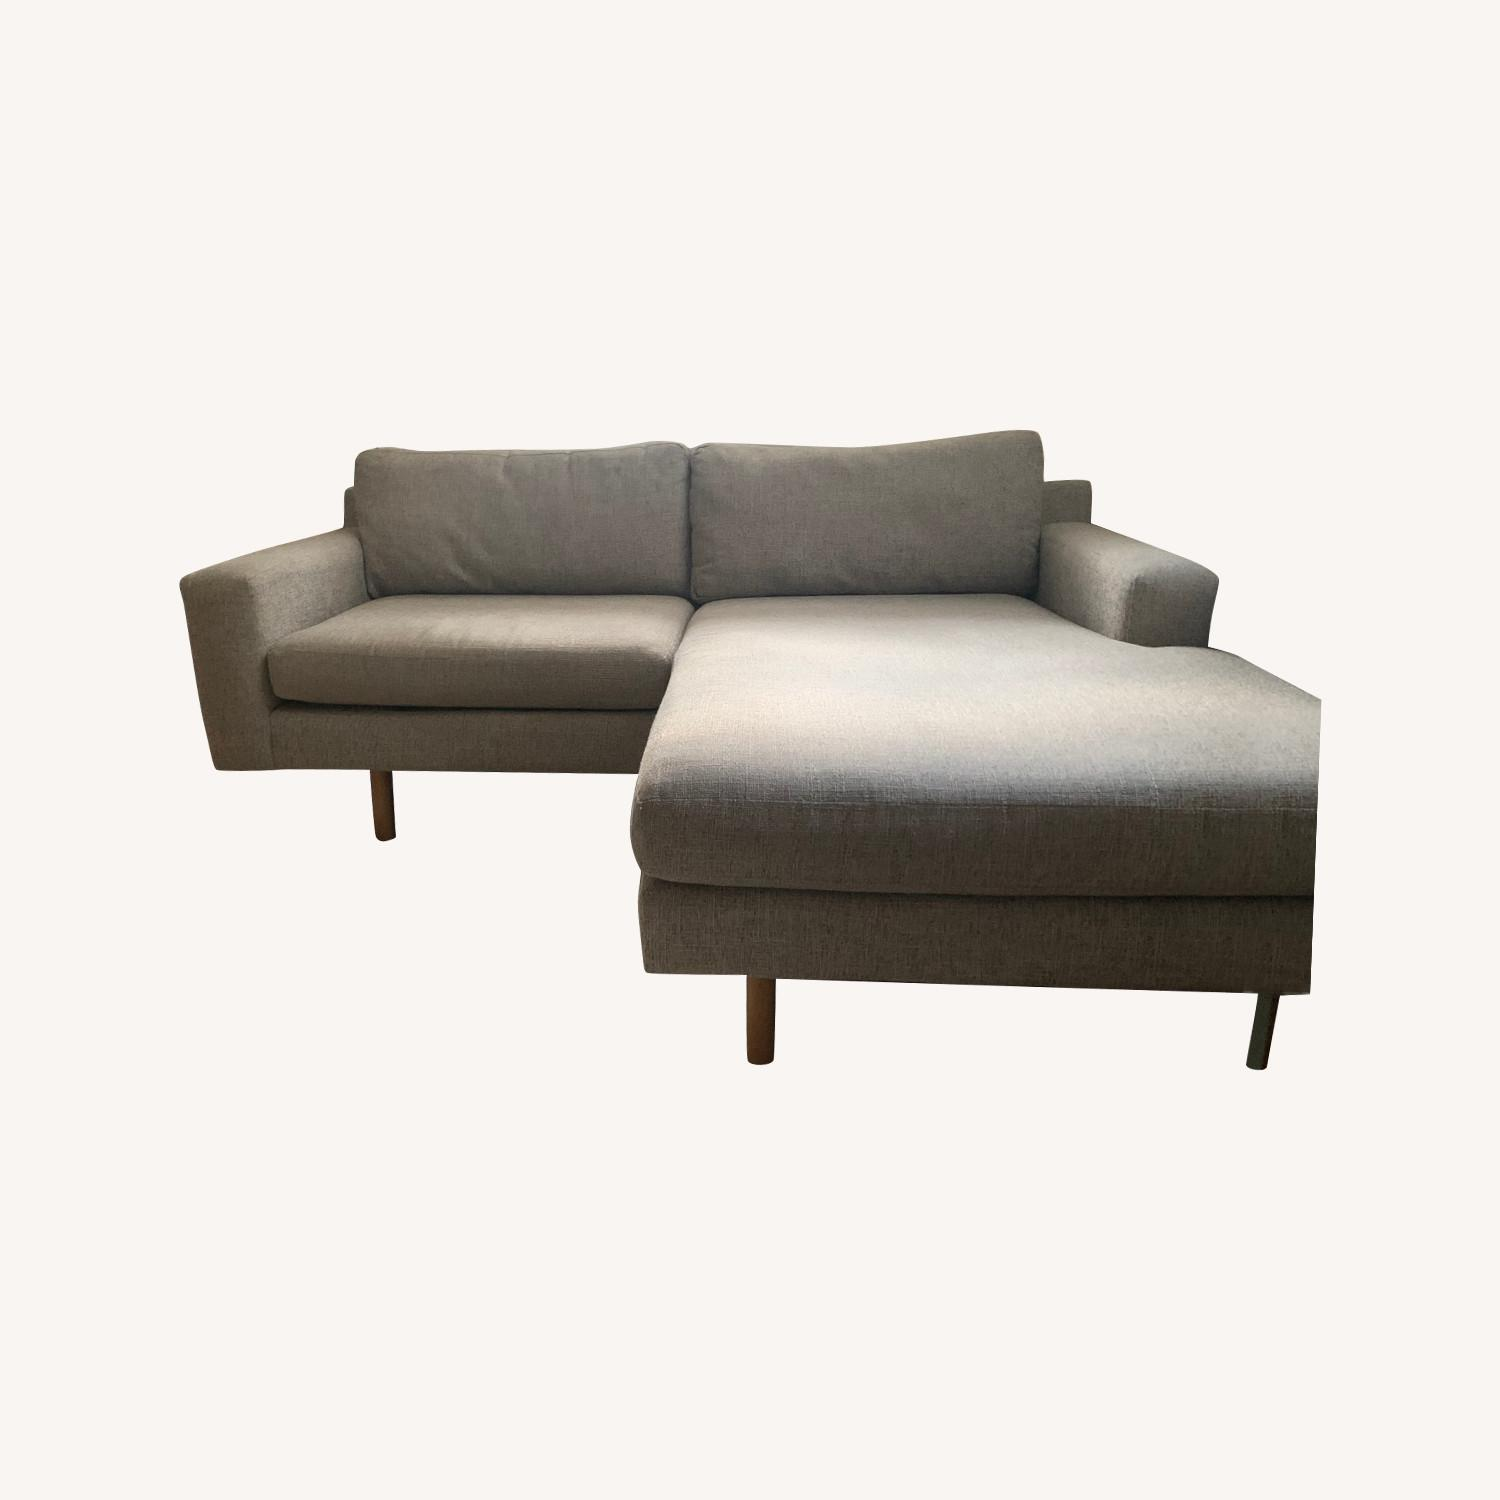 West Elm Eddy Reversible Sectional - image-0